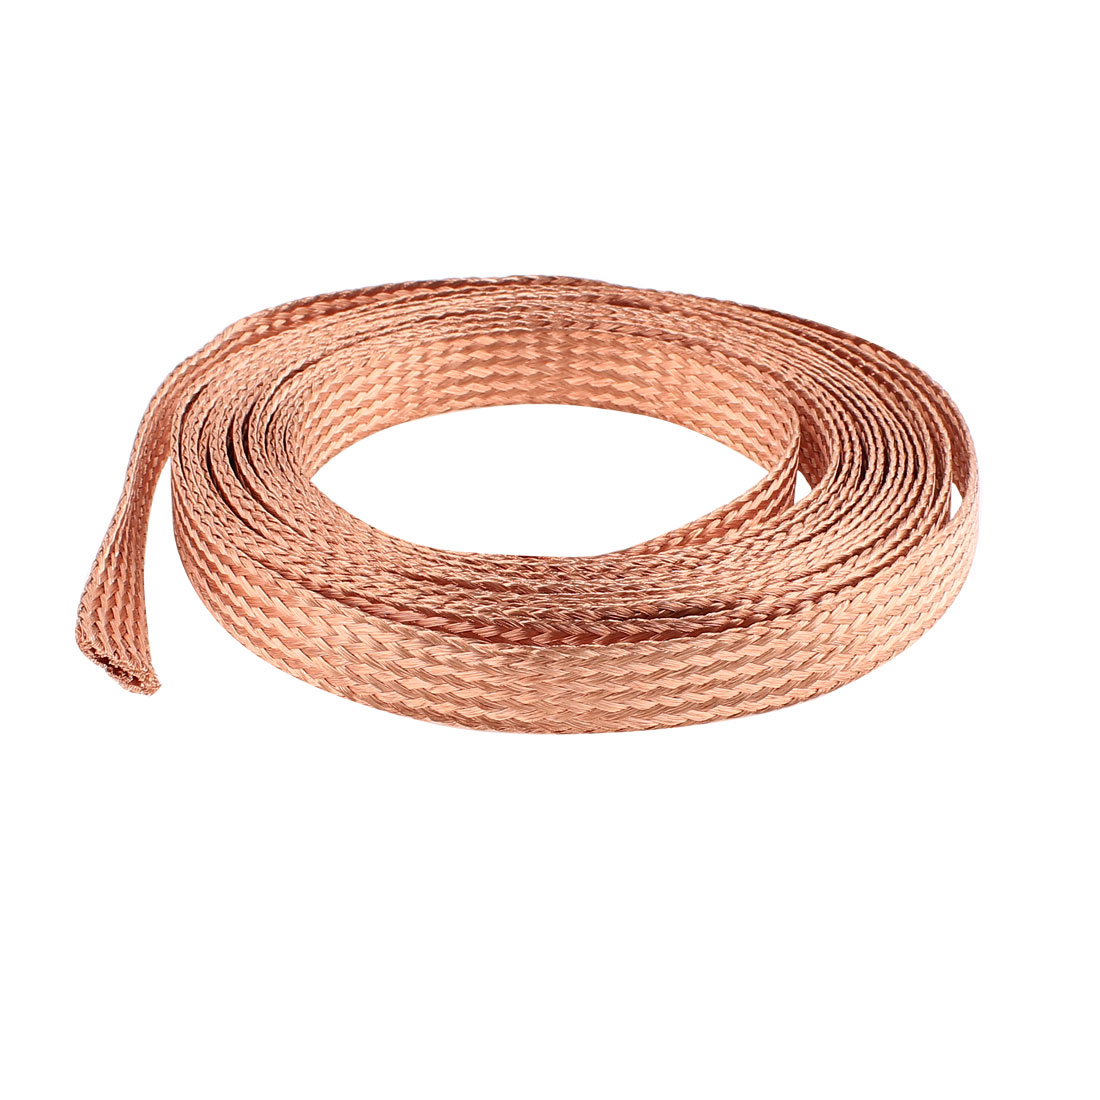 10 Square Millimeter Thickness 5M Length Flat Electrical Bare Braided Copper Wire